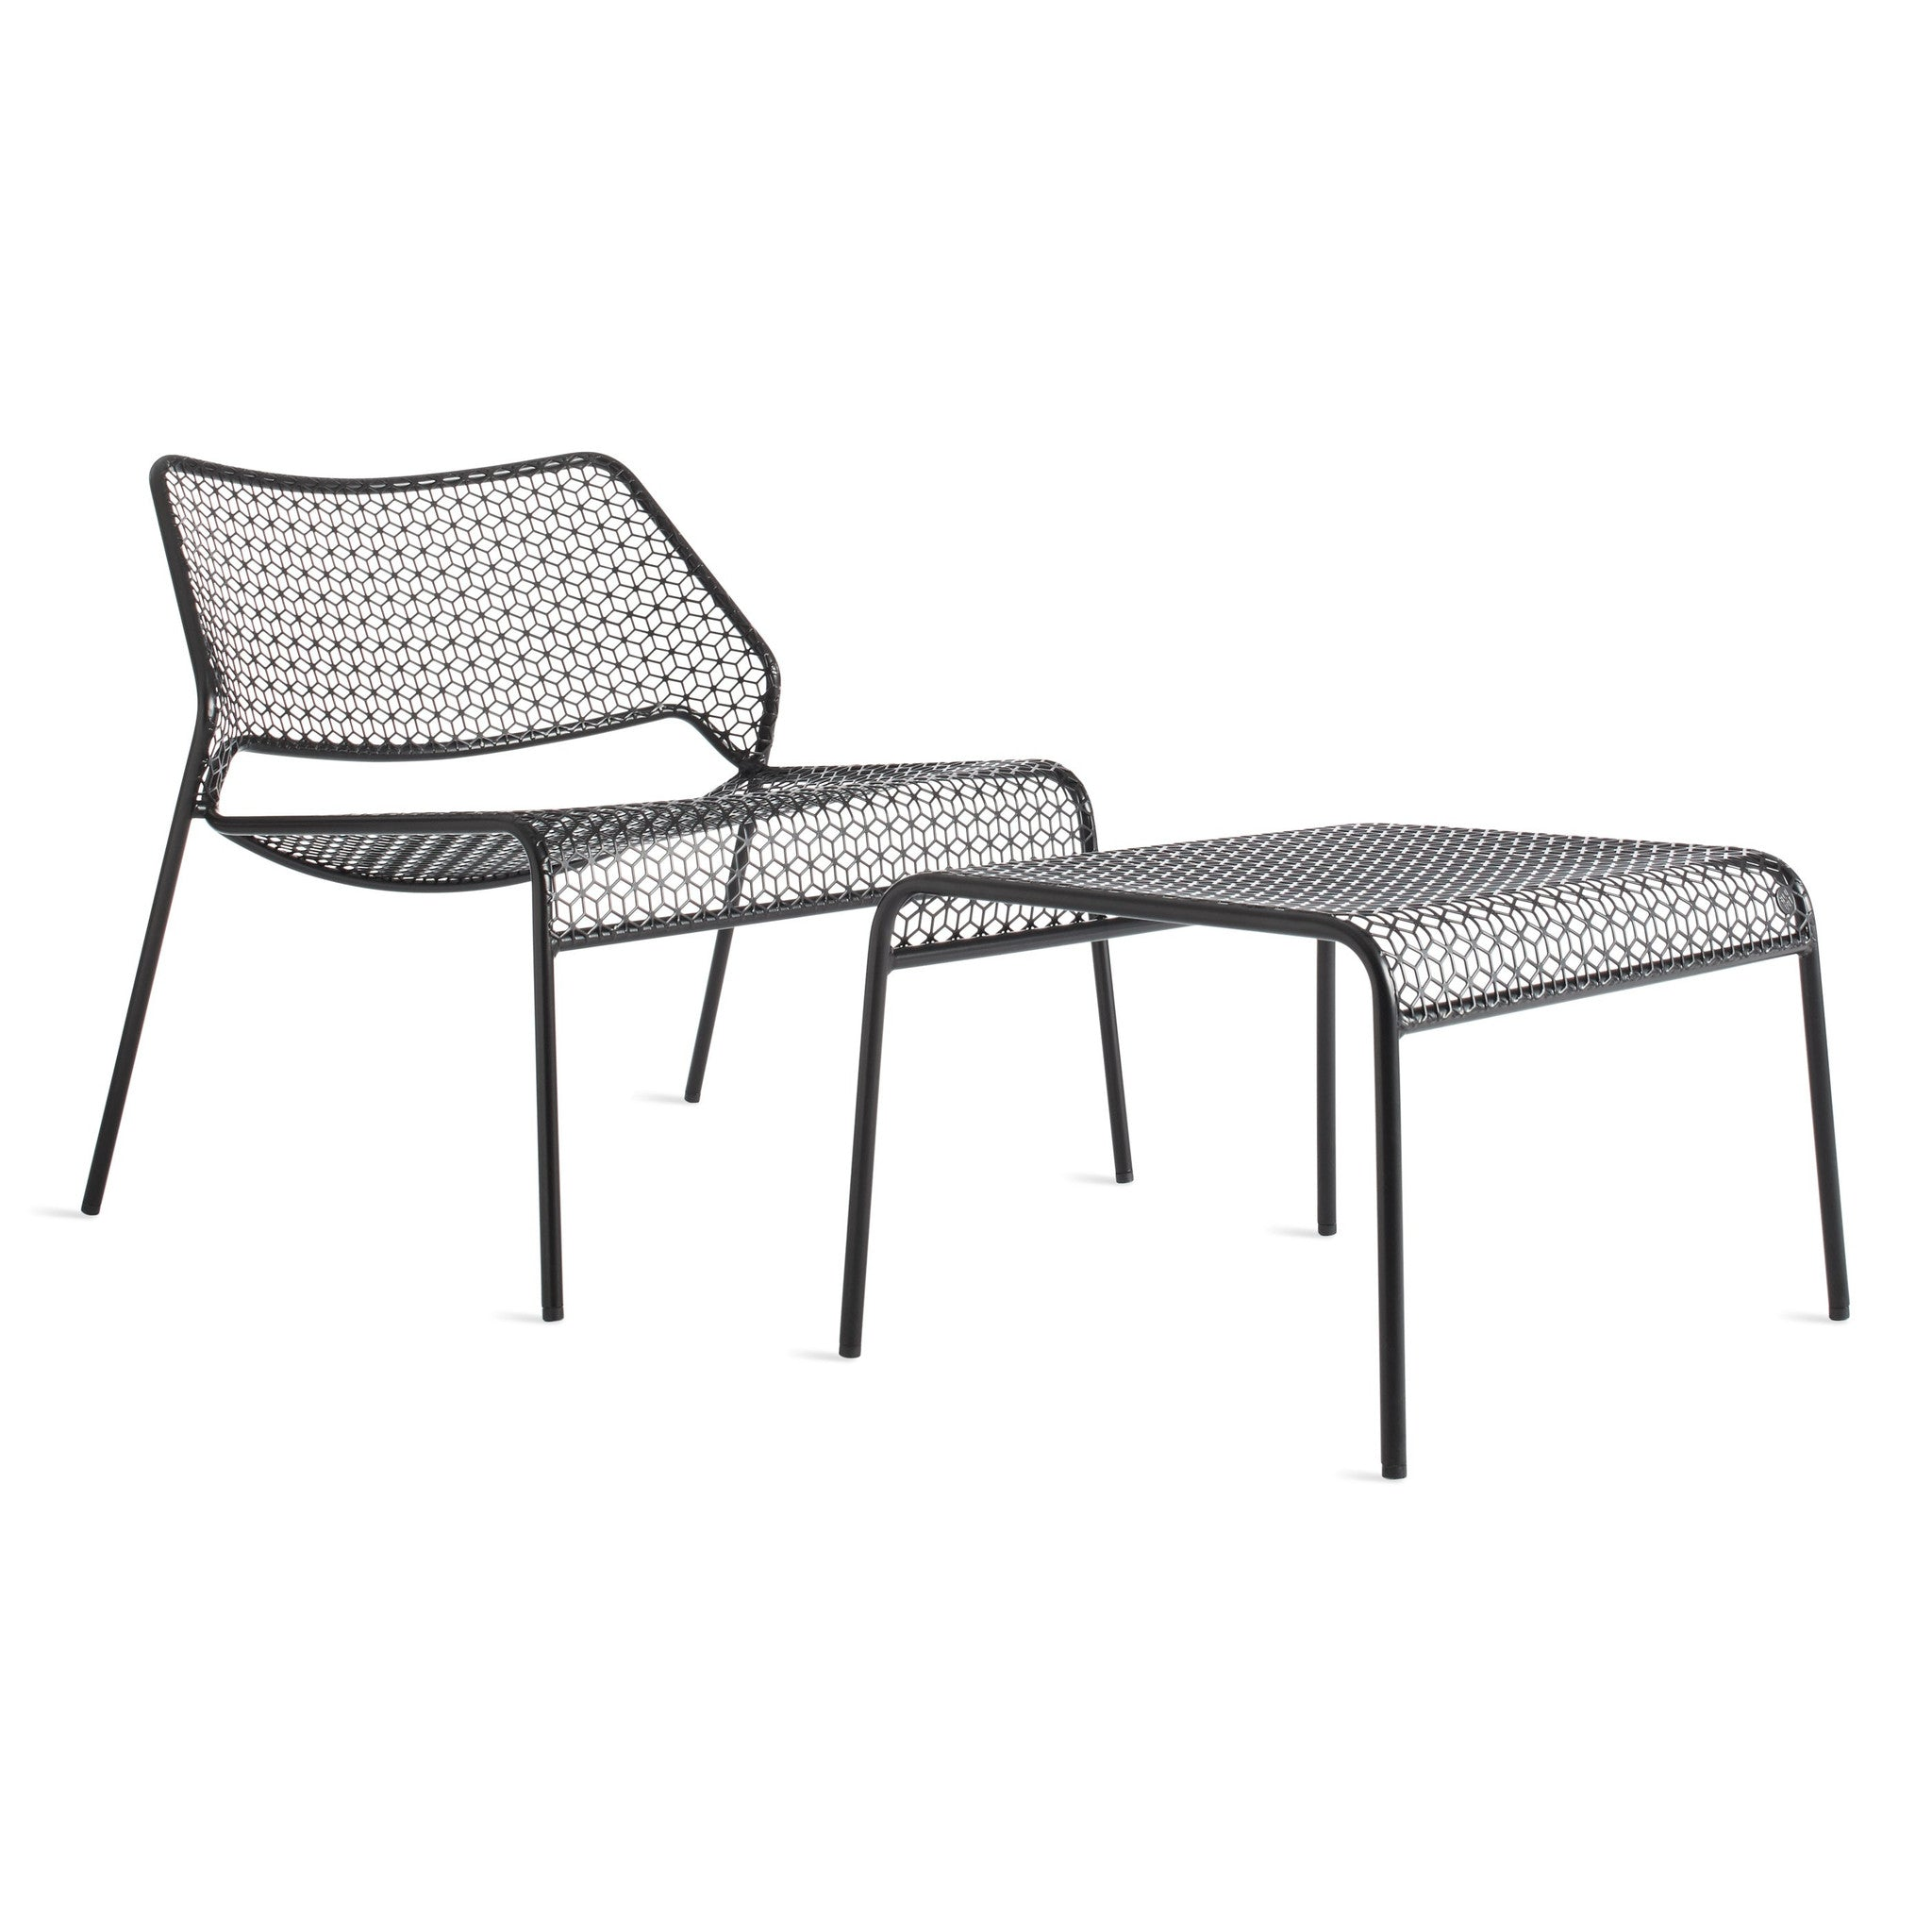 Hot Mesh Lounge Chair Area Furniture for the Modern Home